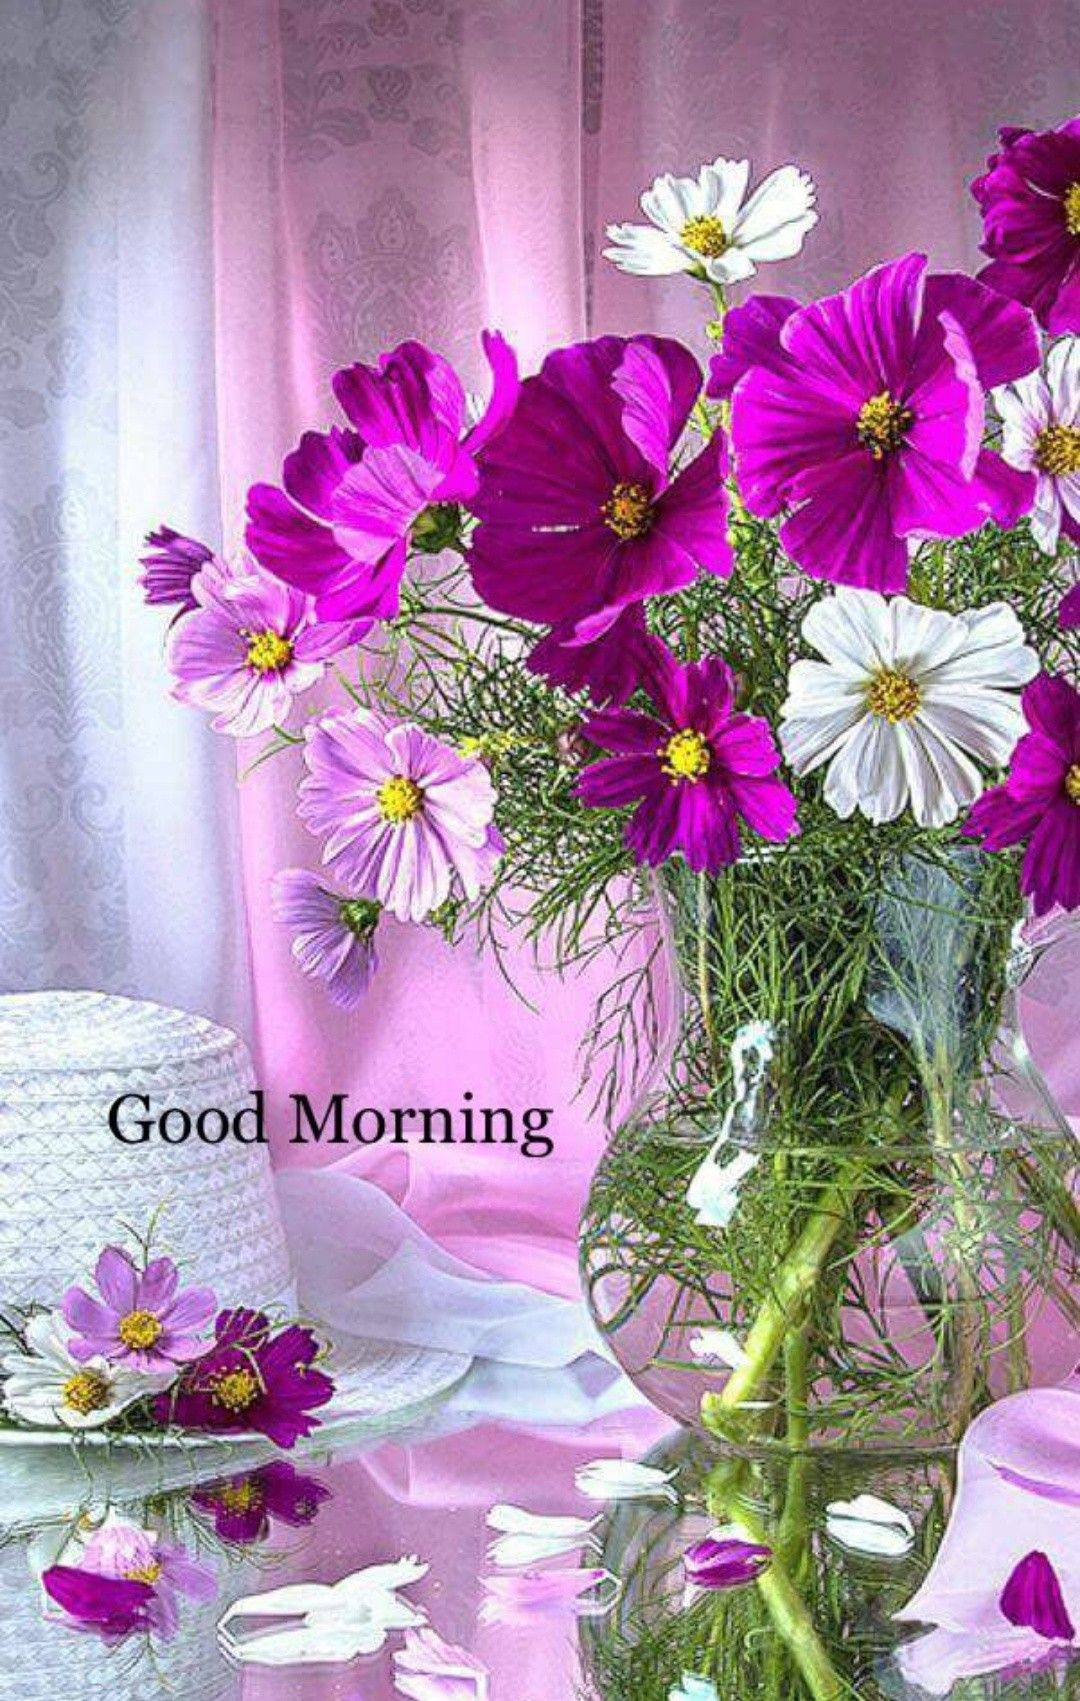 Pin By Wah On Good Morning Wishes Pinterest Morning Greeting